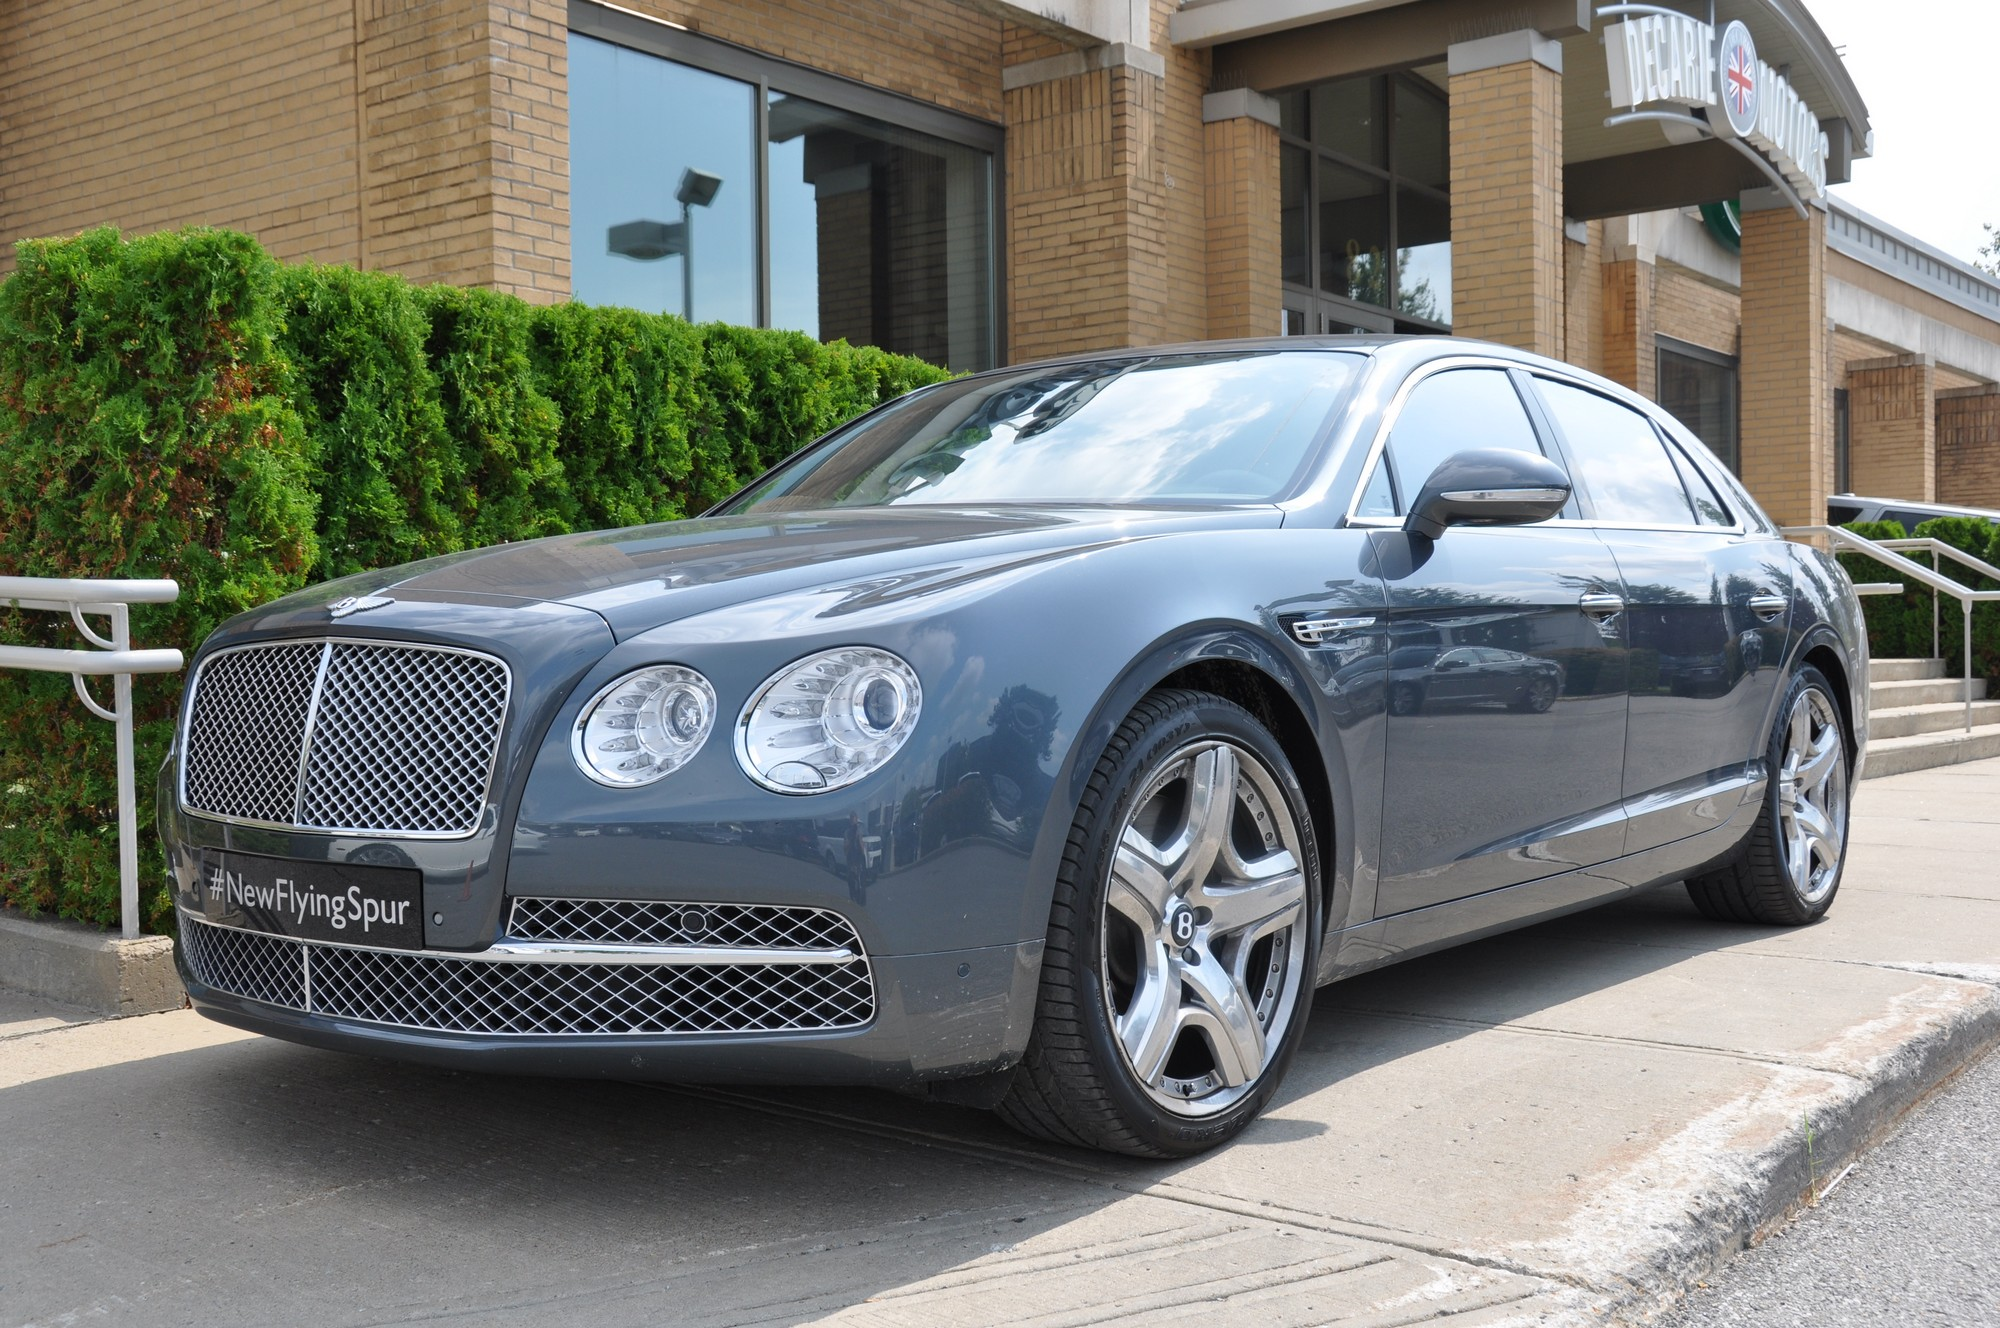 2014 Bentley Flying Spur 23 Free Car Wallpaper